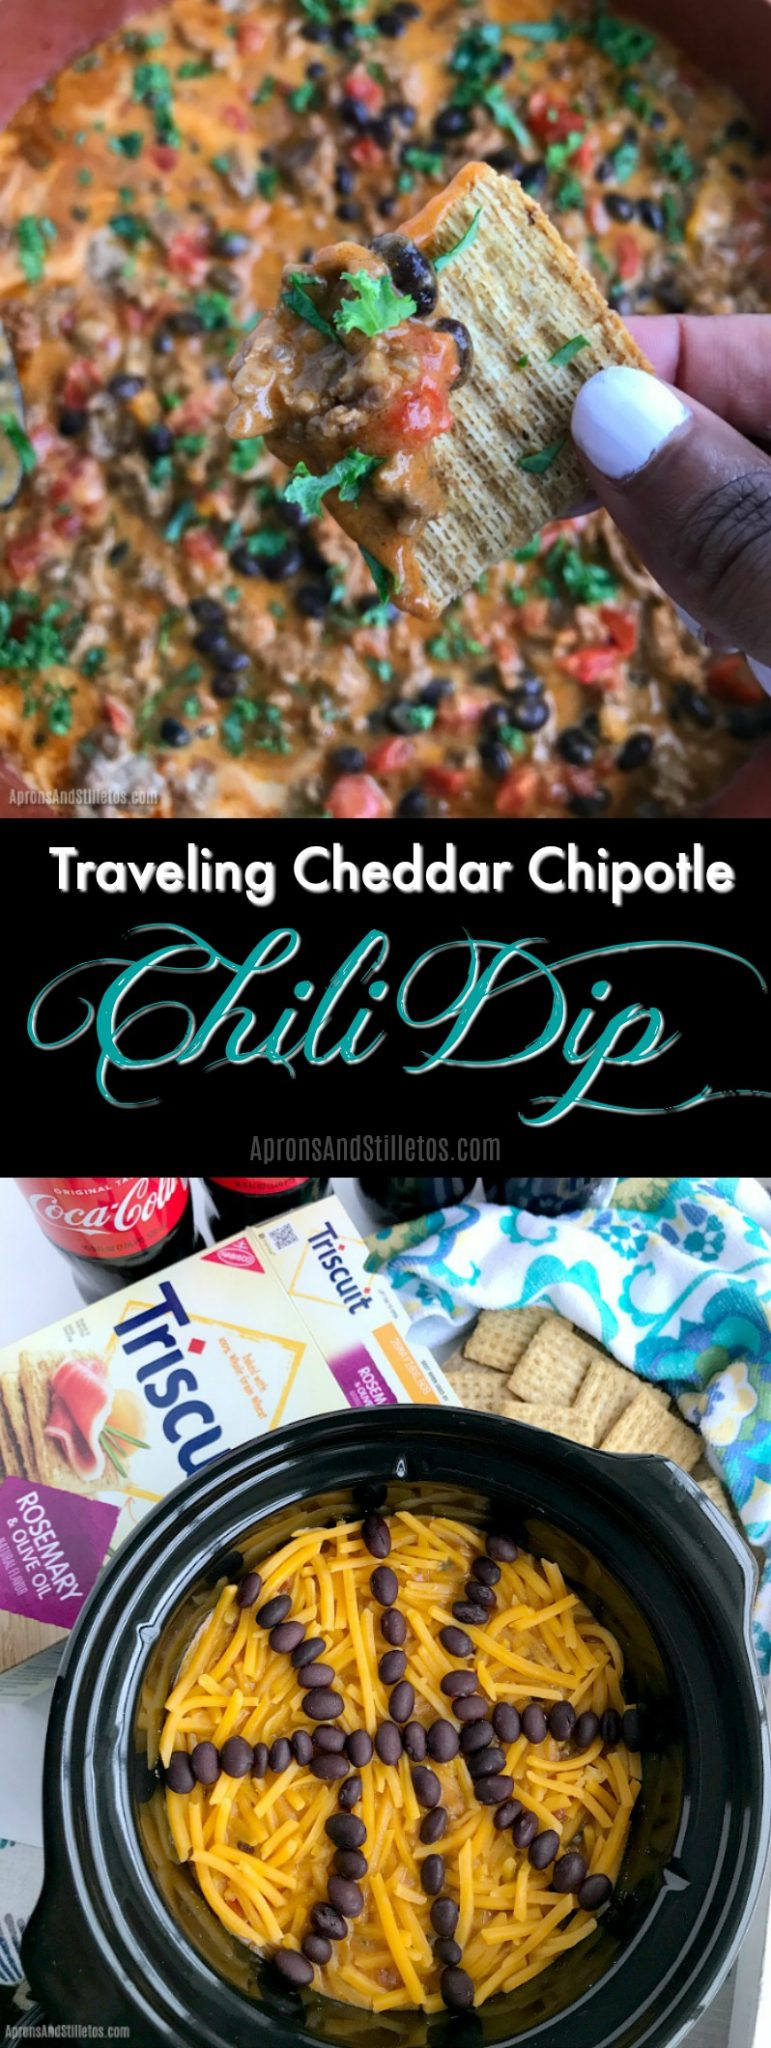 Traveling Cheddar Chipotle Chili Dip